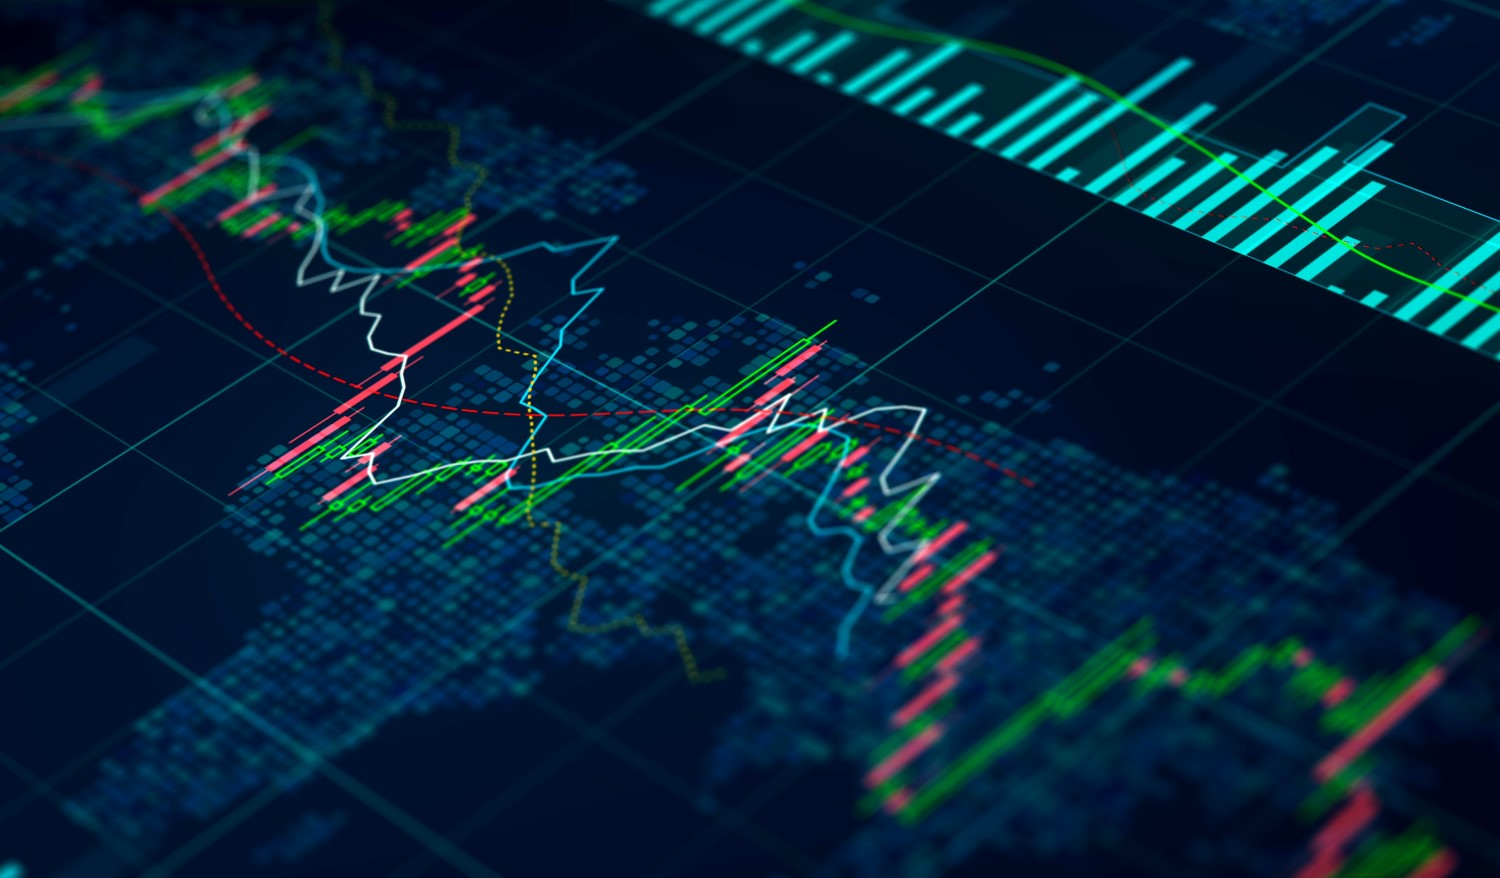 Forex Broker FXCM Launches Basket of 5 Cryptos for Retail Investors